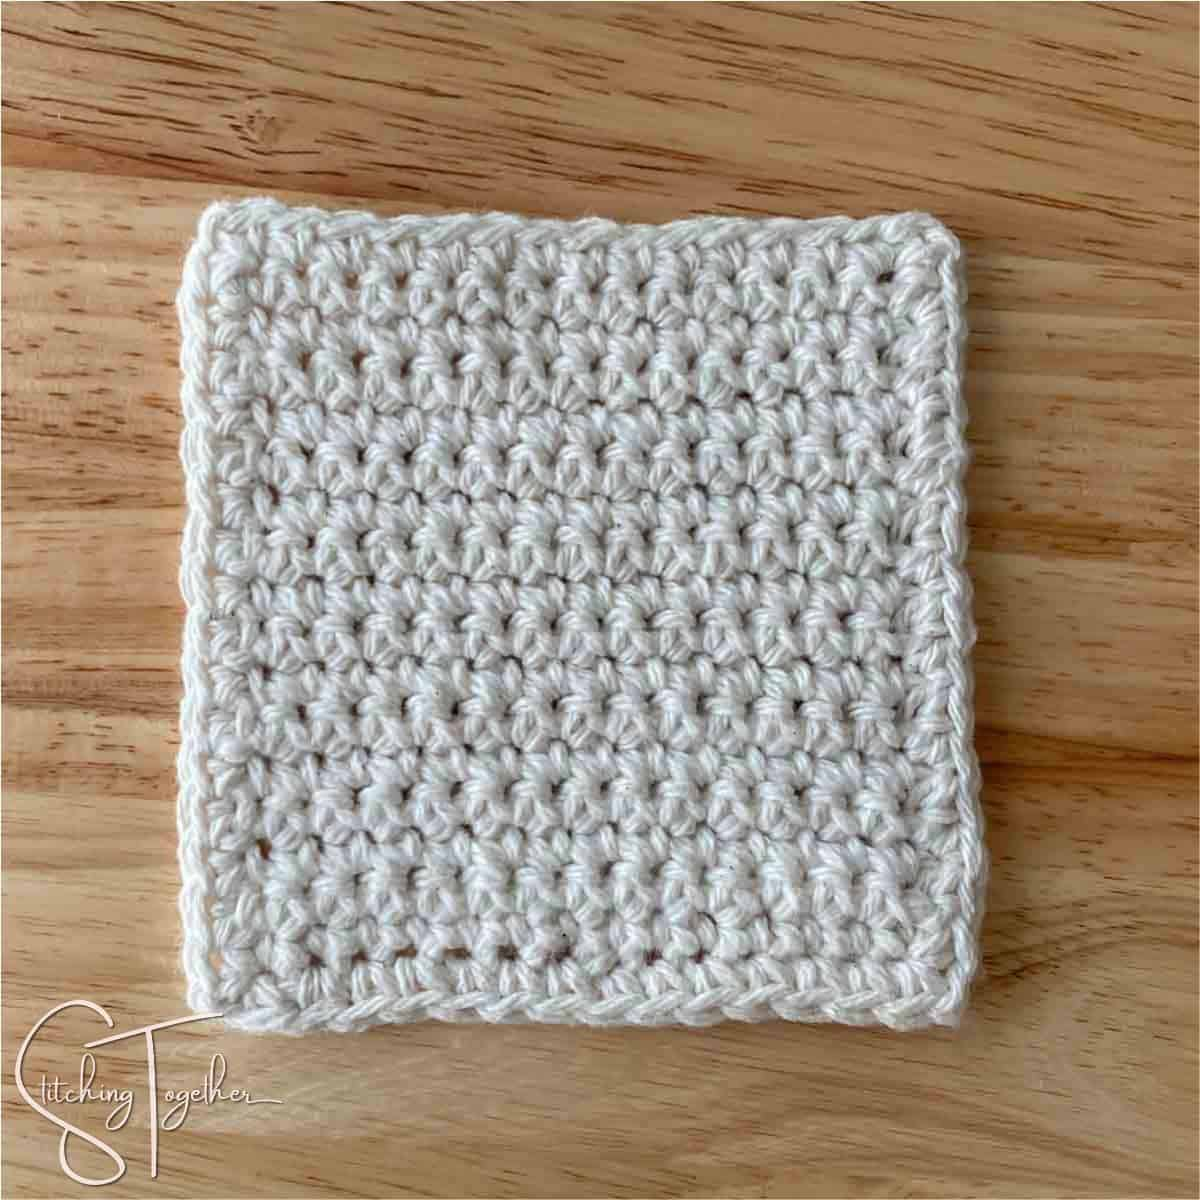 completed easy square crochet coaster